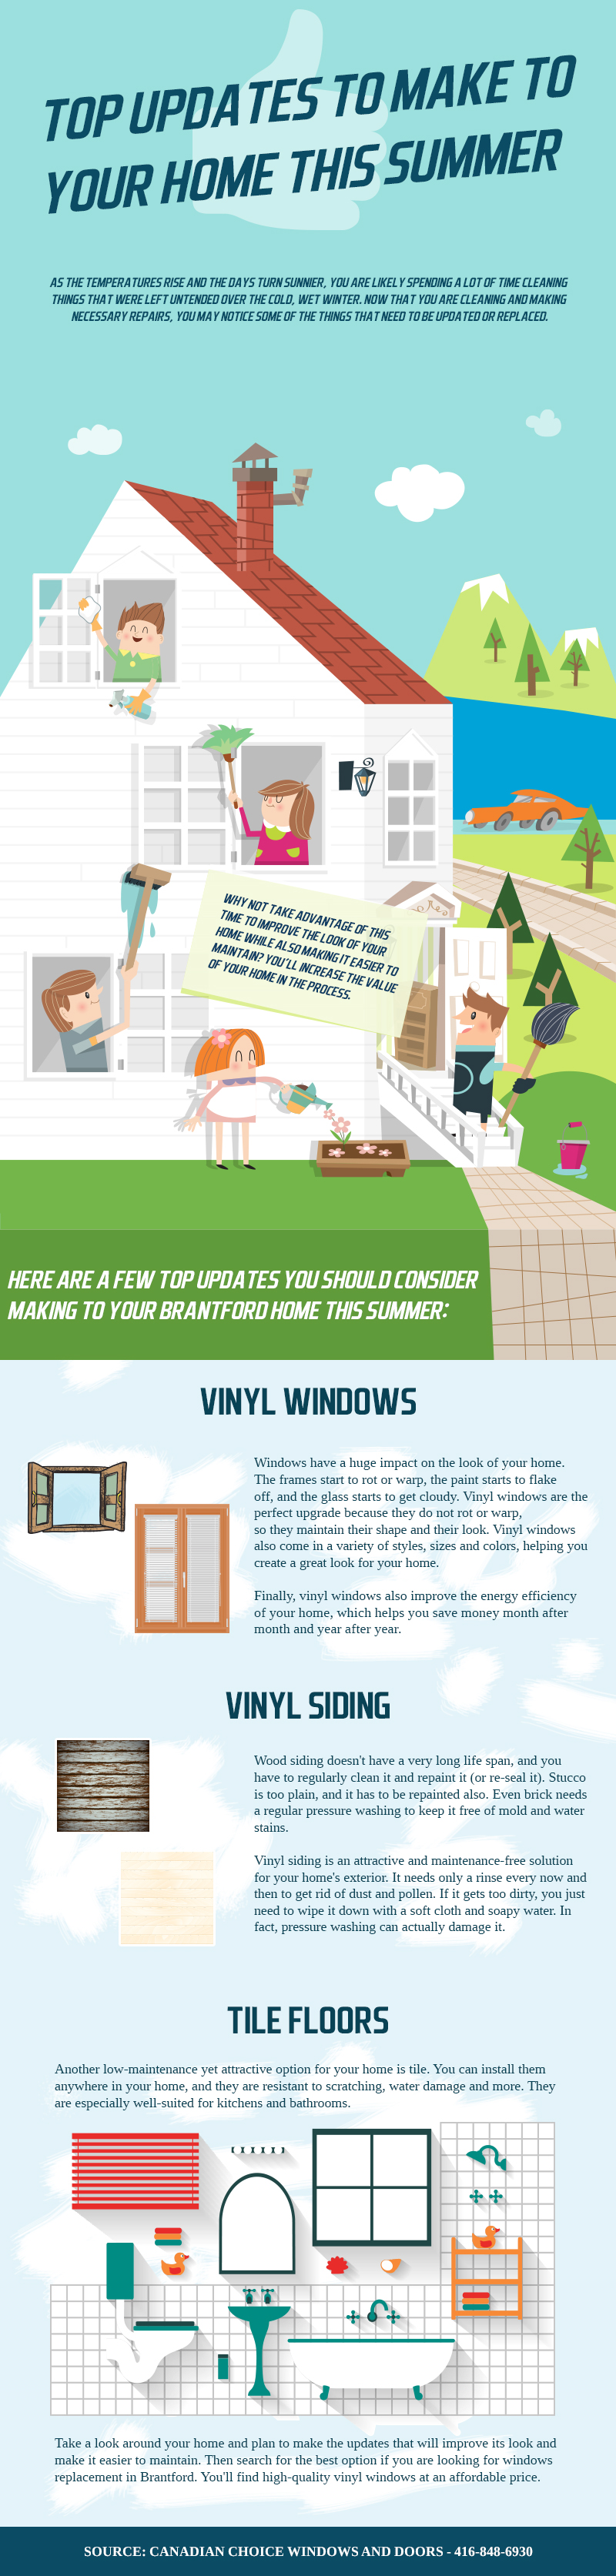 Top Updates to Make to Your Home this Summer